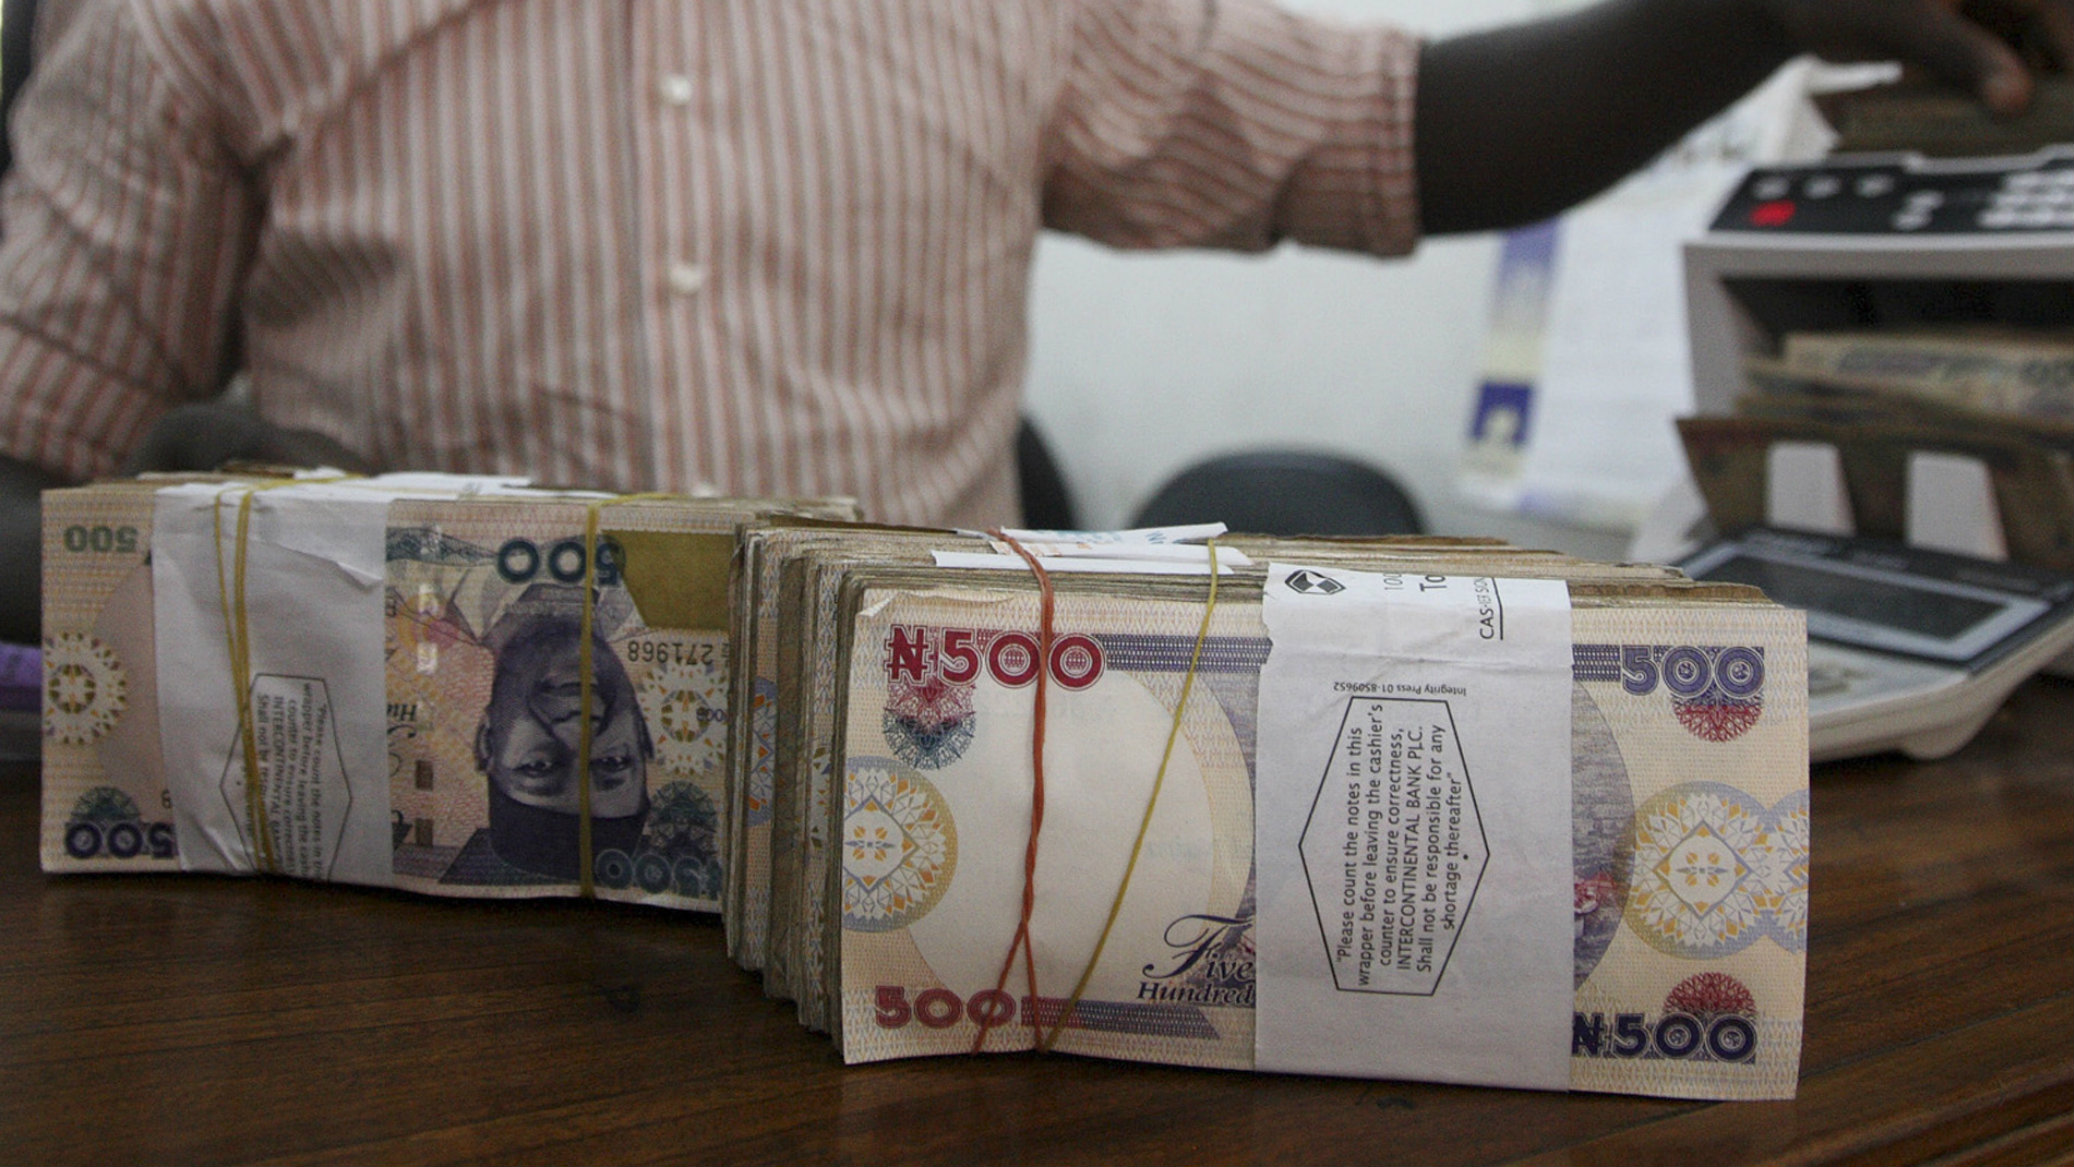 A money dealer counts the Nigerian naira on a machine in his office in the commercial capital of Lagos, January 13, 2009. Nigeria's central bank governor moved to reassure investors on Tuesday following sharp falls in the local naira currency, saying the depreciation had protected its foreign reserves and the exchange rate would soon stabilise. REUTERS/Akintunde Akinleye (NIGERIA)